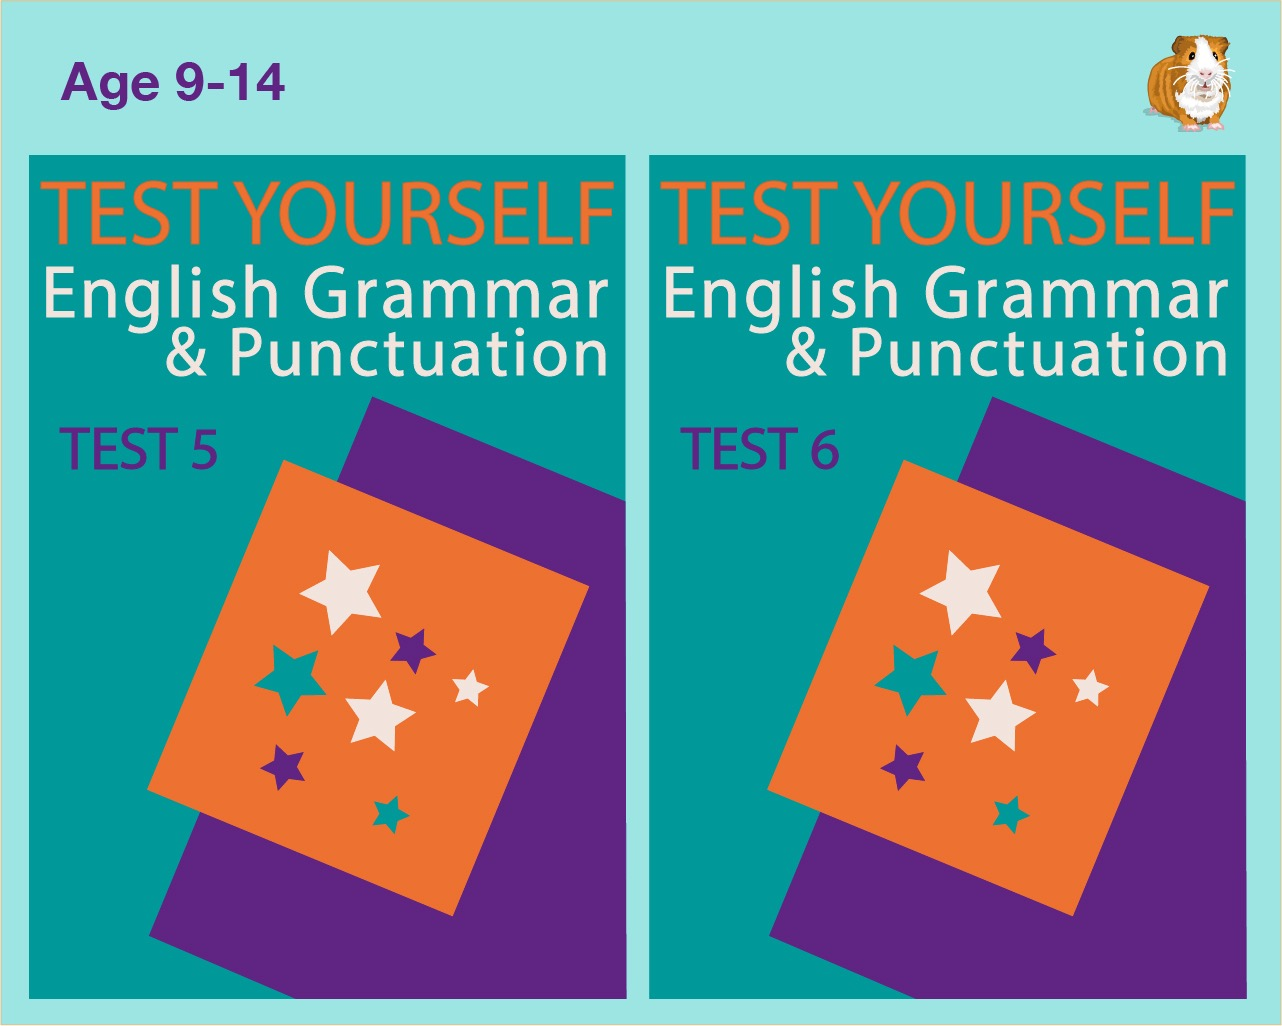 Assessment Test 5 & 6 (Test Your English Grammar And Punctuation Skills) 9-14 years